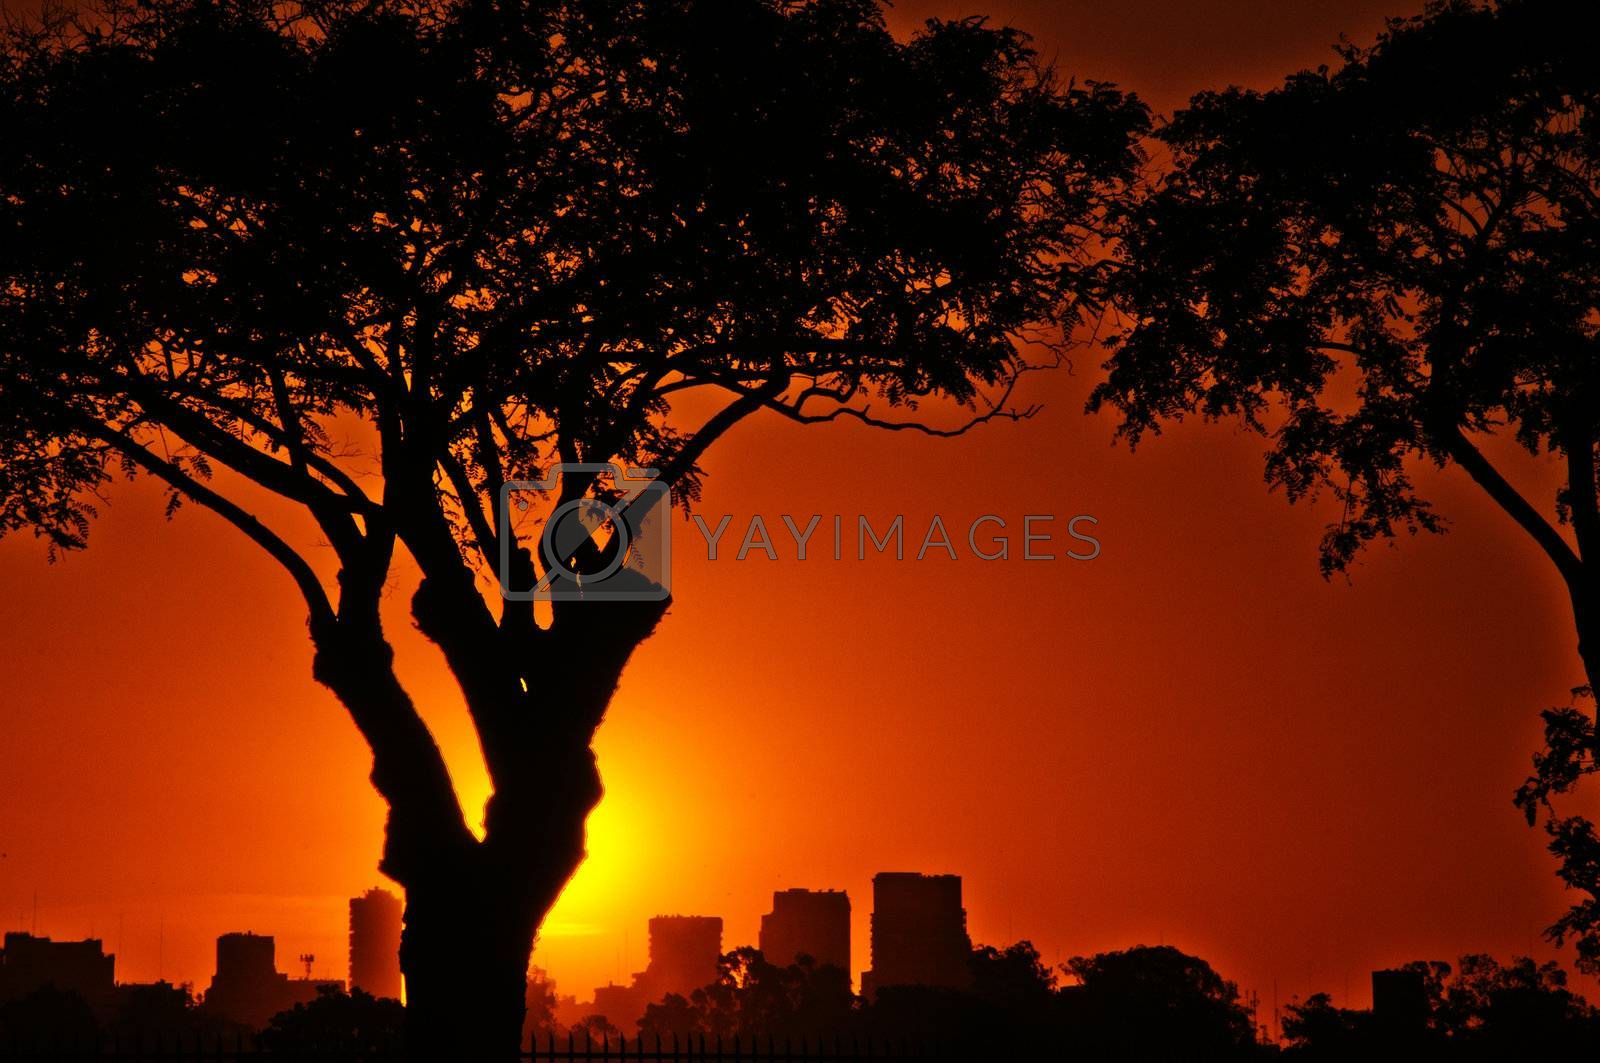 A vibrant summer sunset with trees in the foreground and Buenos Aires in the background.